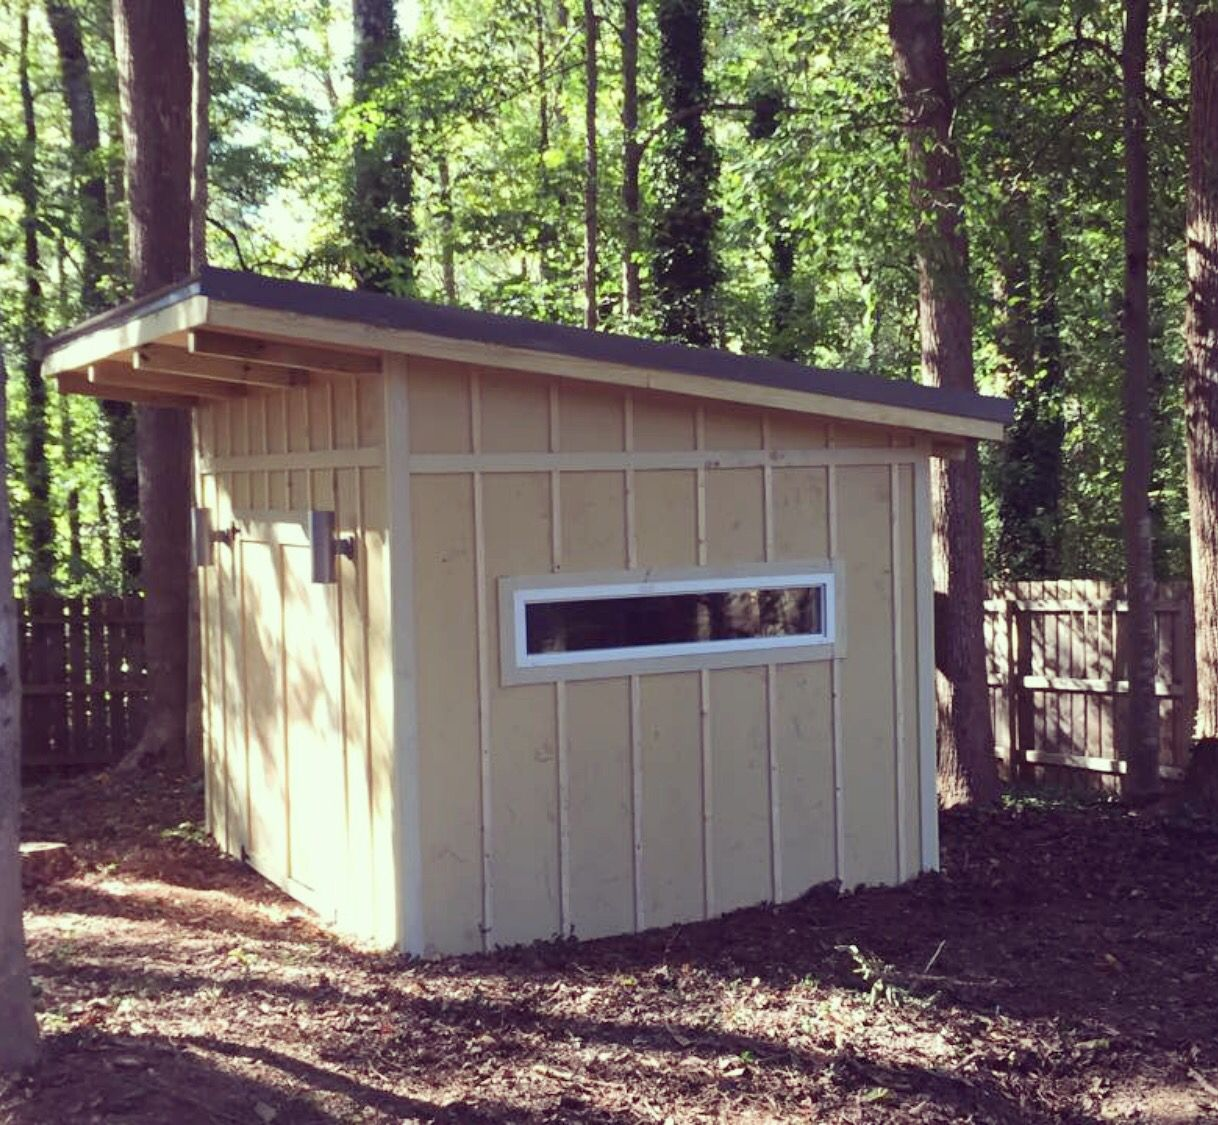 Modern Shed Atlanta: 10 X 12 Slant Roof Modern Shed, Board And Batten Siding